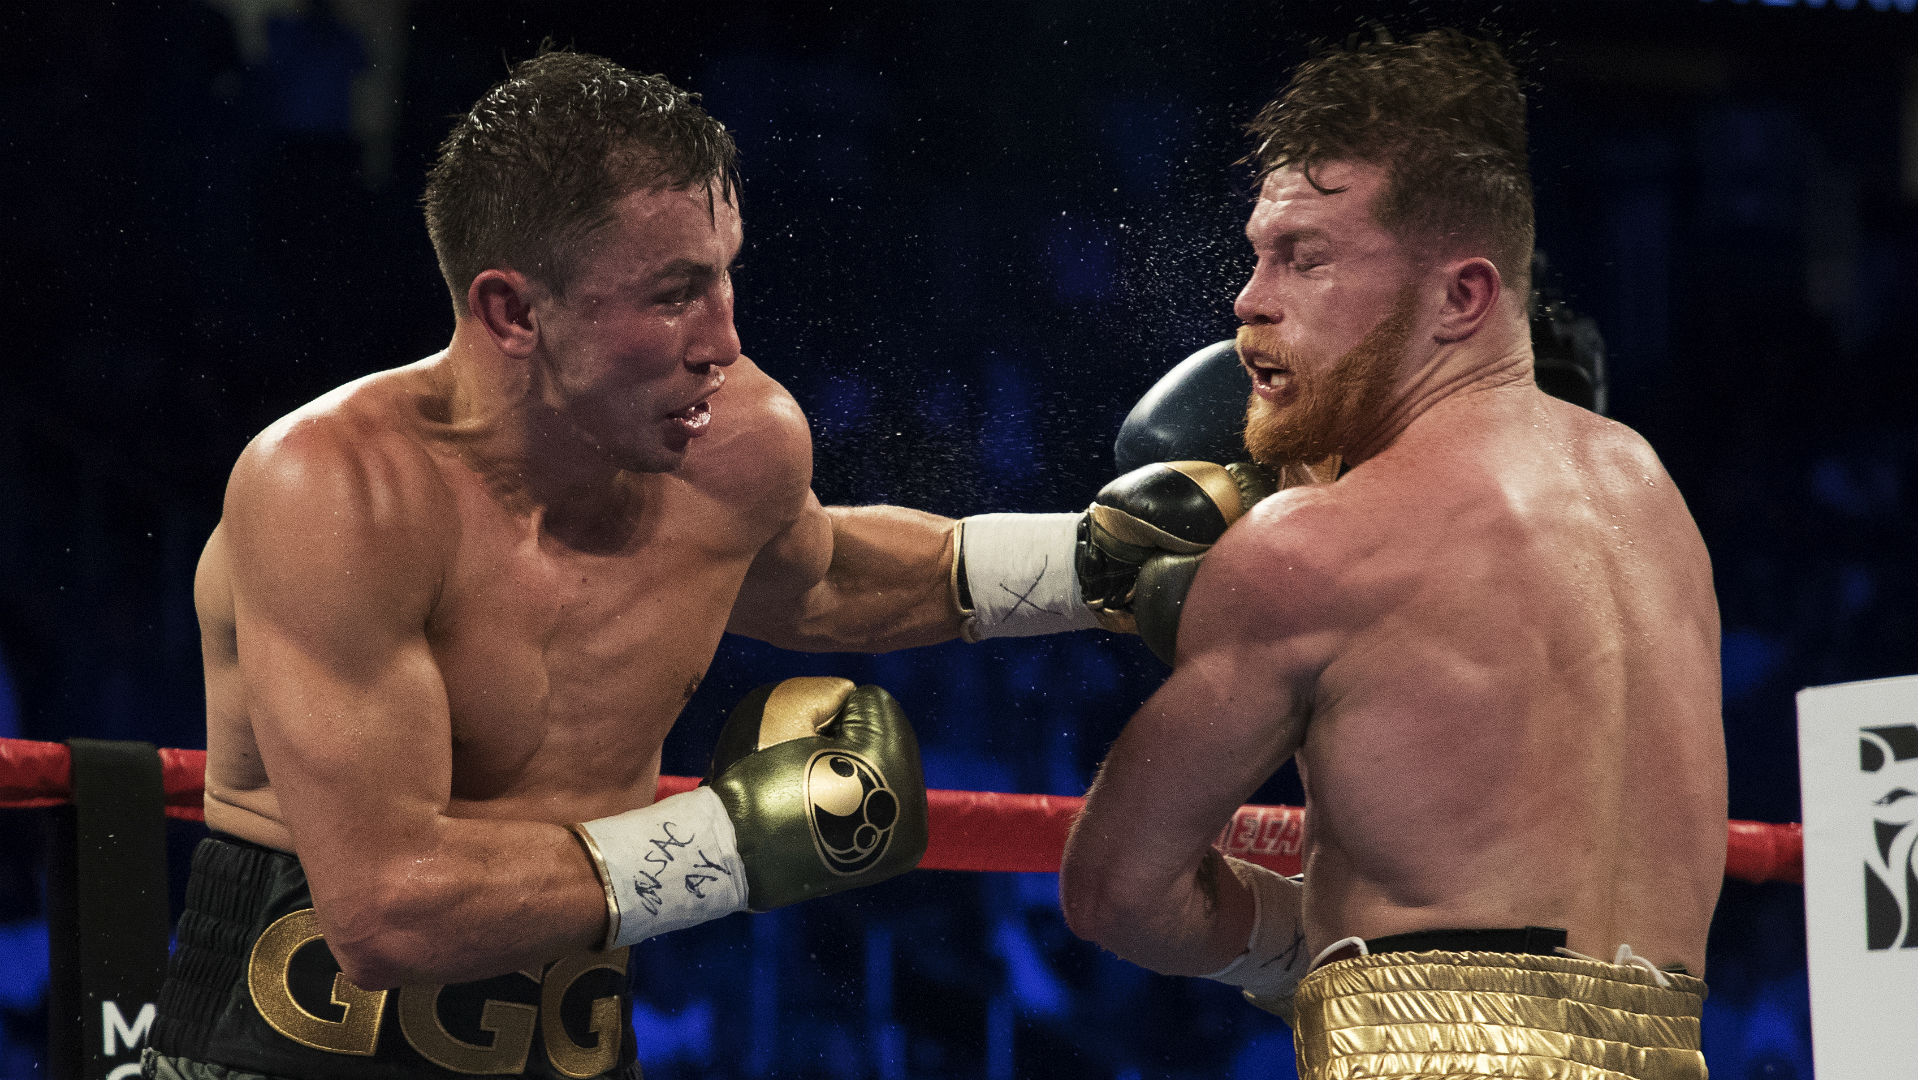 How Canelo Alvarez Surprised Gennady Golovkin With a Different Game Plan